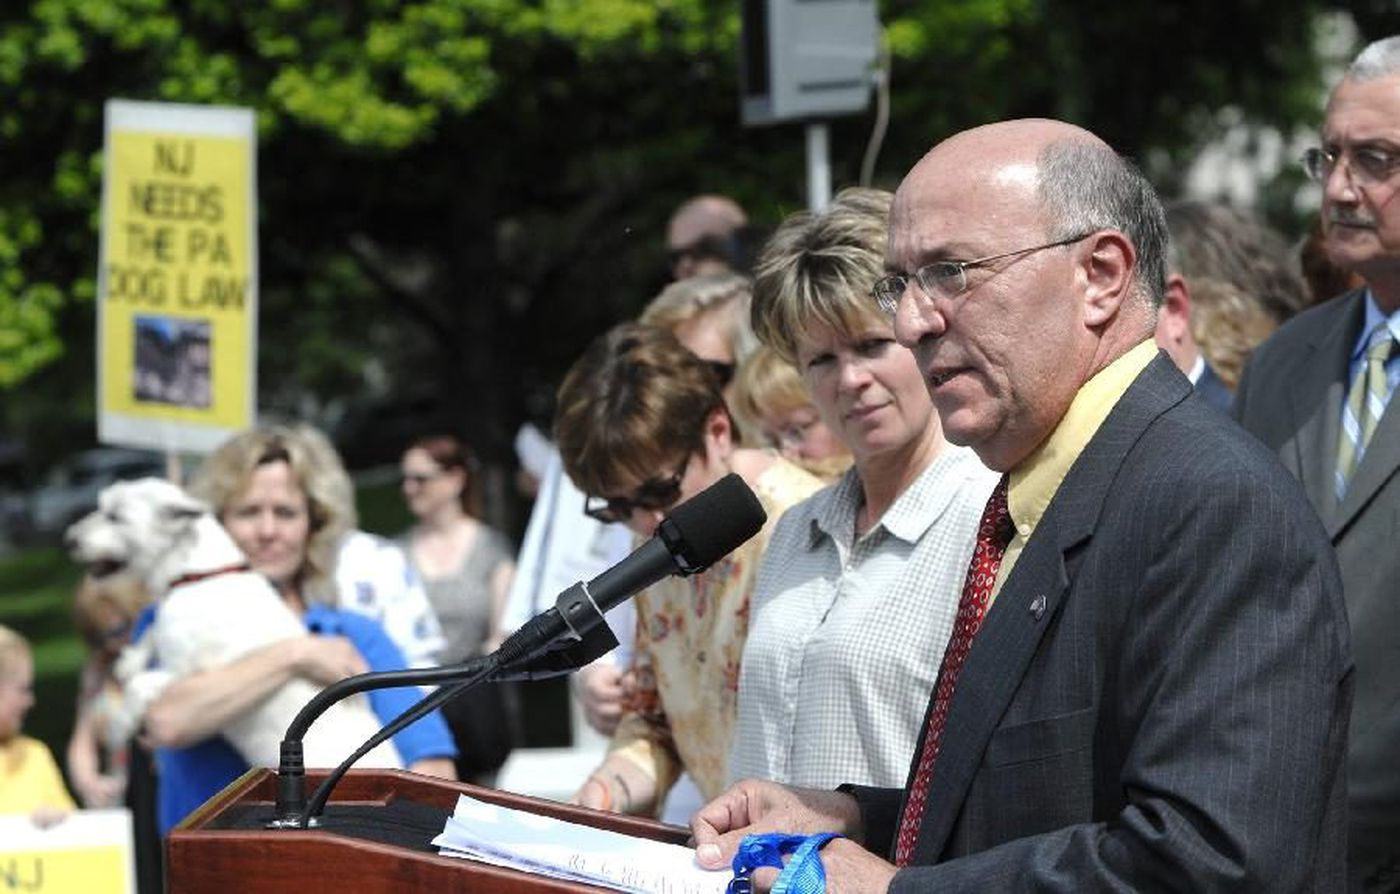 Pa. Rep. Caltagirone denies sexual harassment, says he will not resign